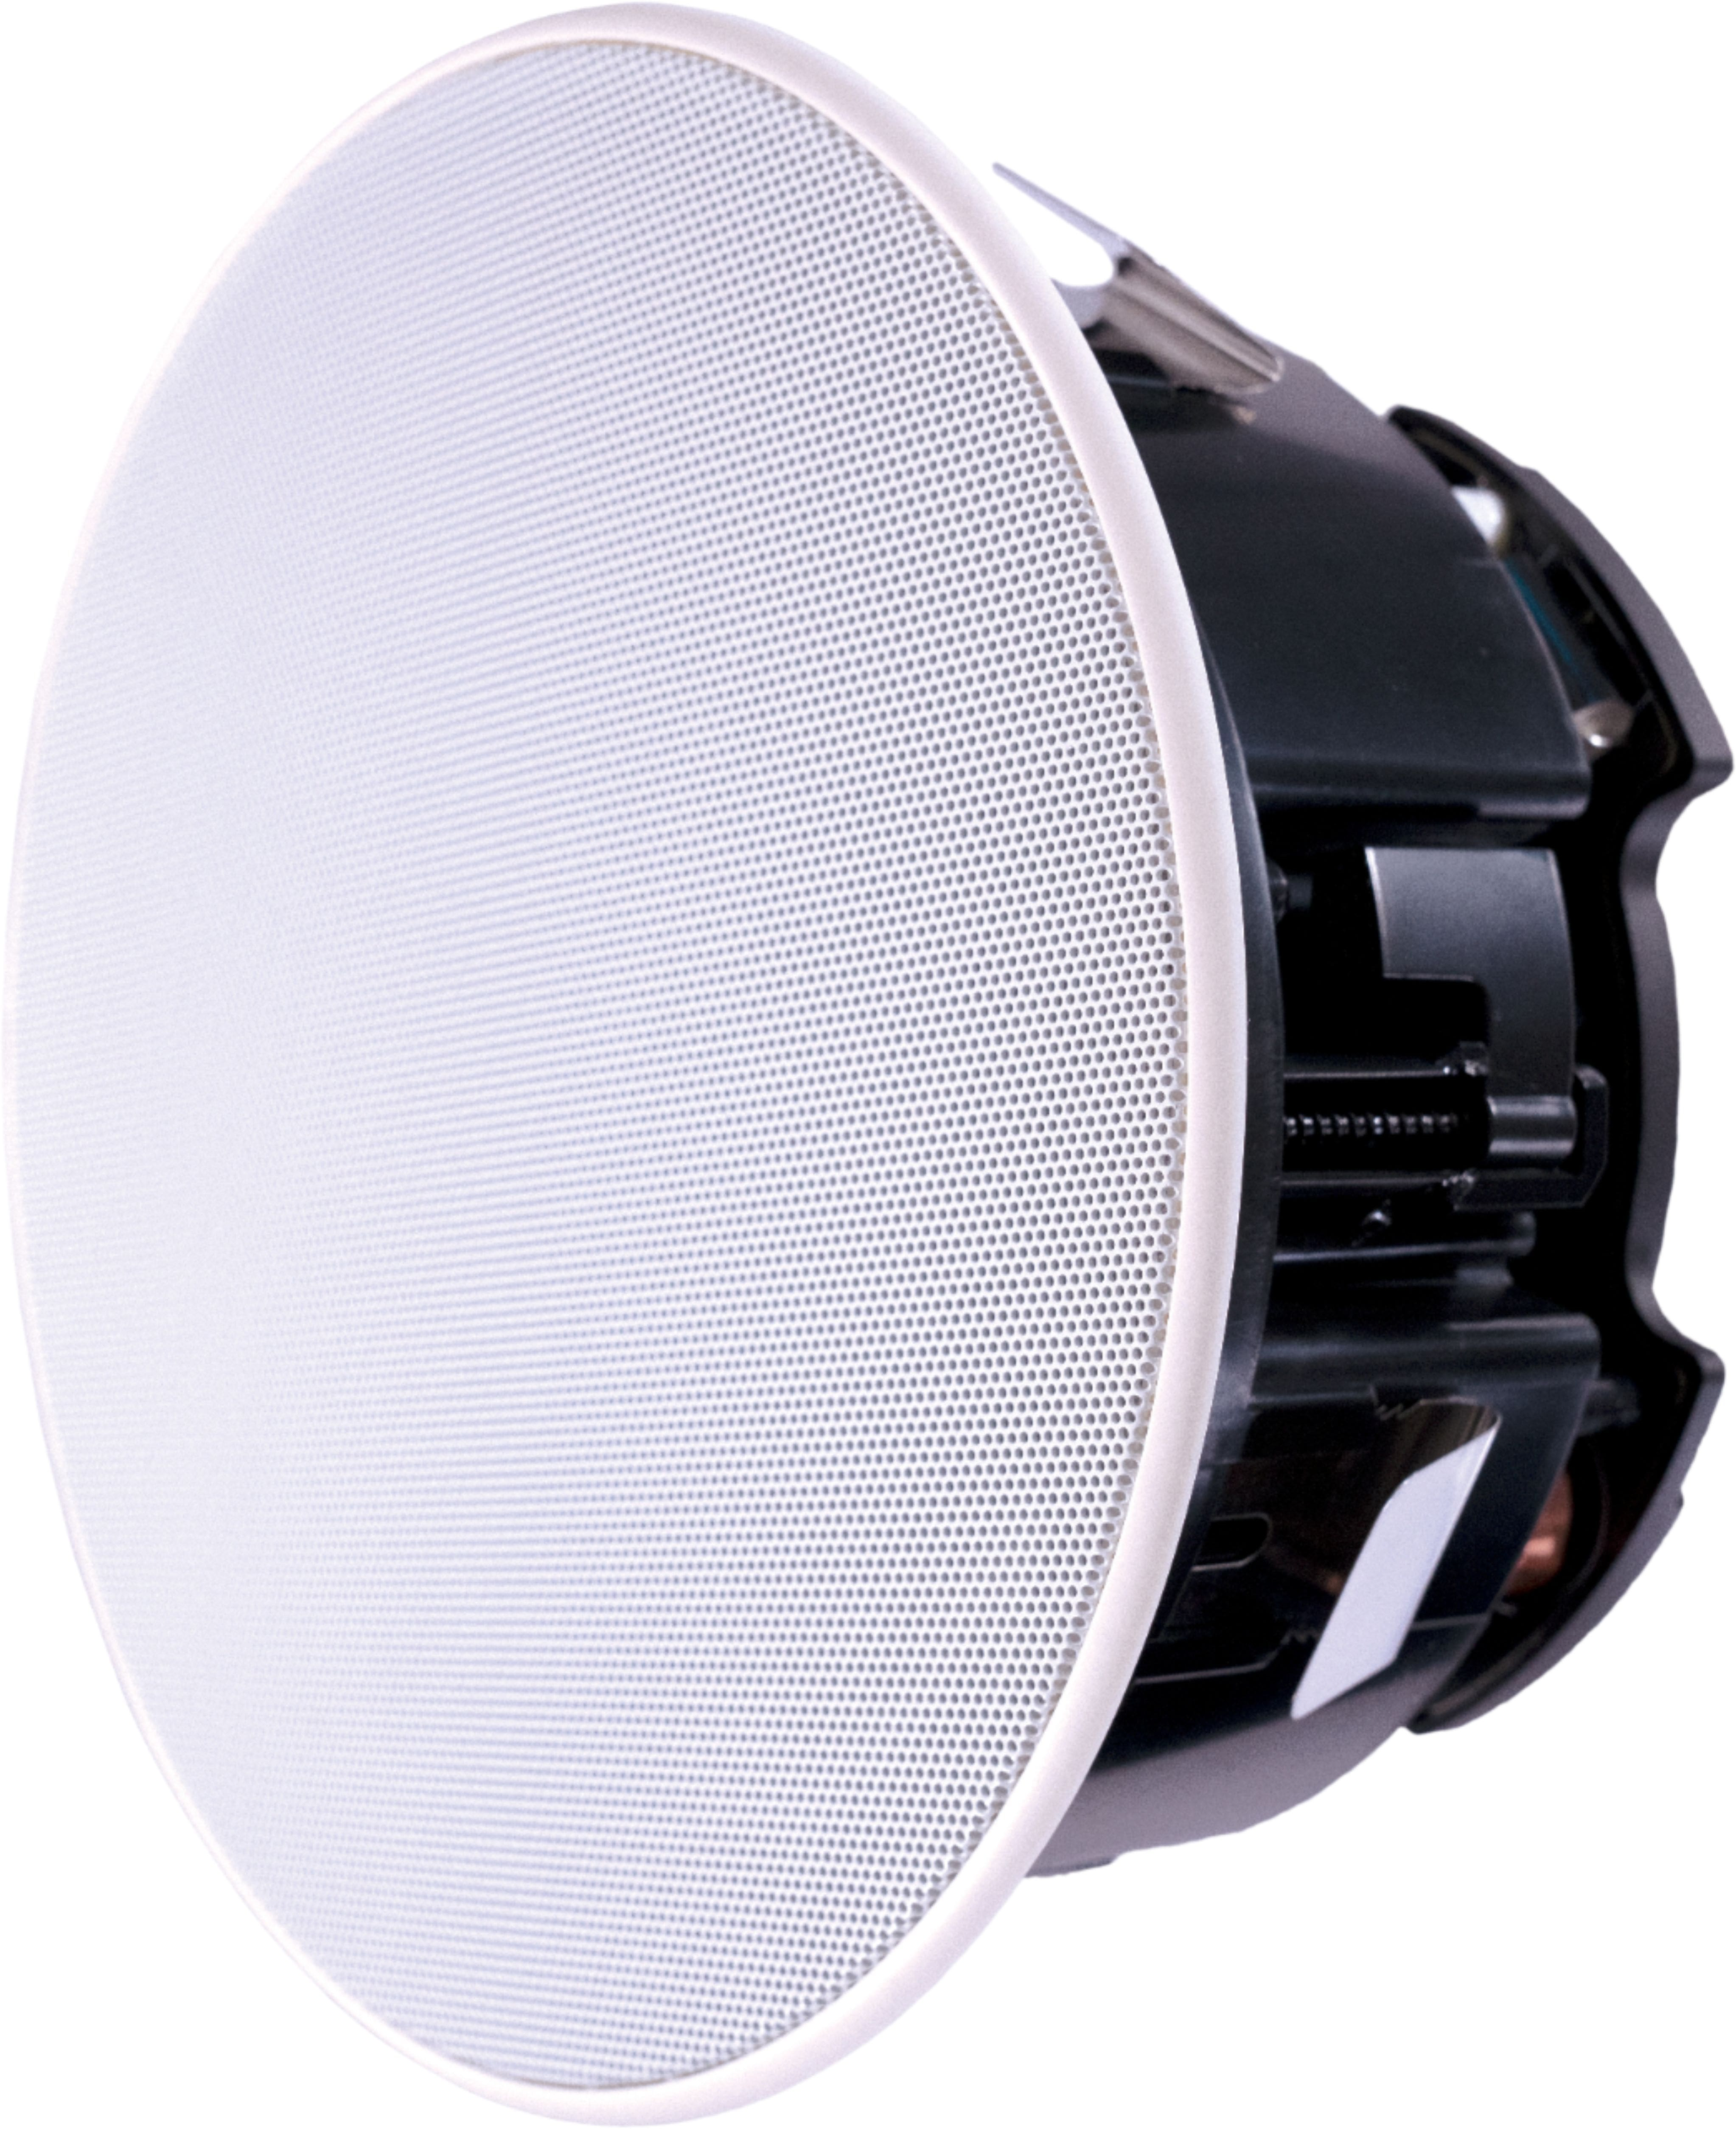 "Sonance - 6-1/2"" 2-Way In-Ceiling Speakers (Pair) - Paintable White at Best Buy for $129"